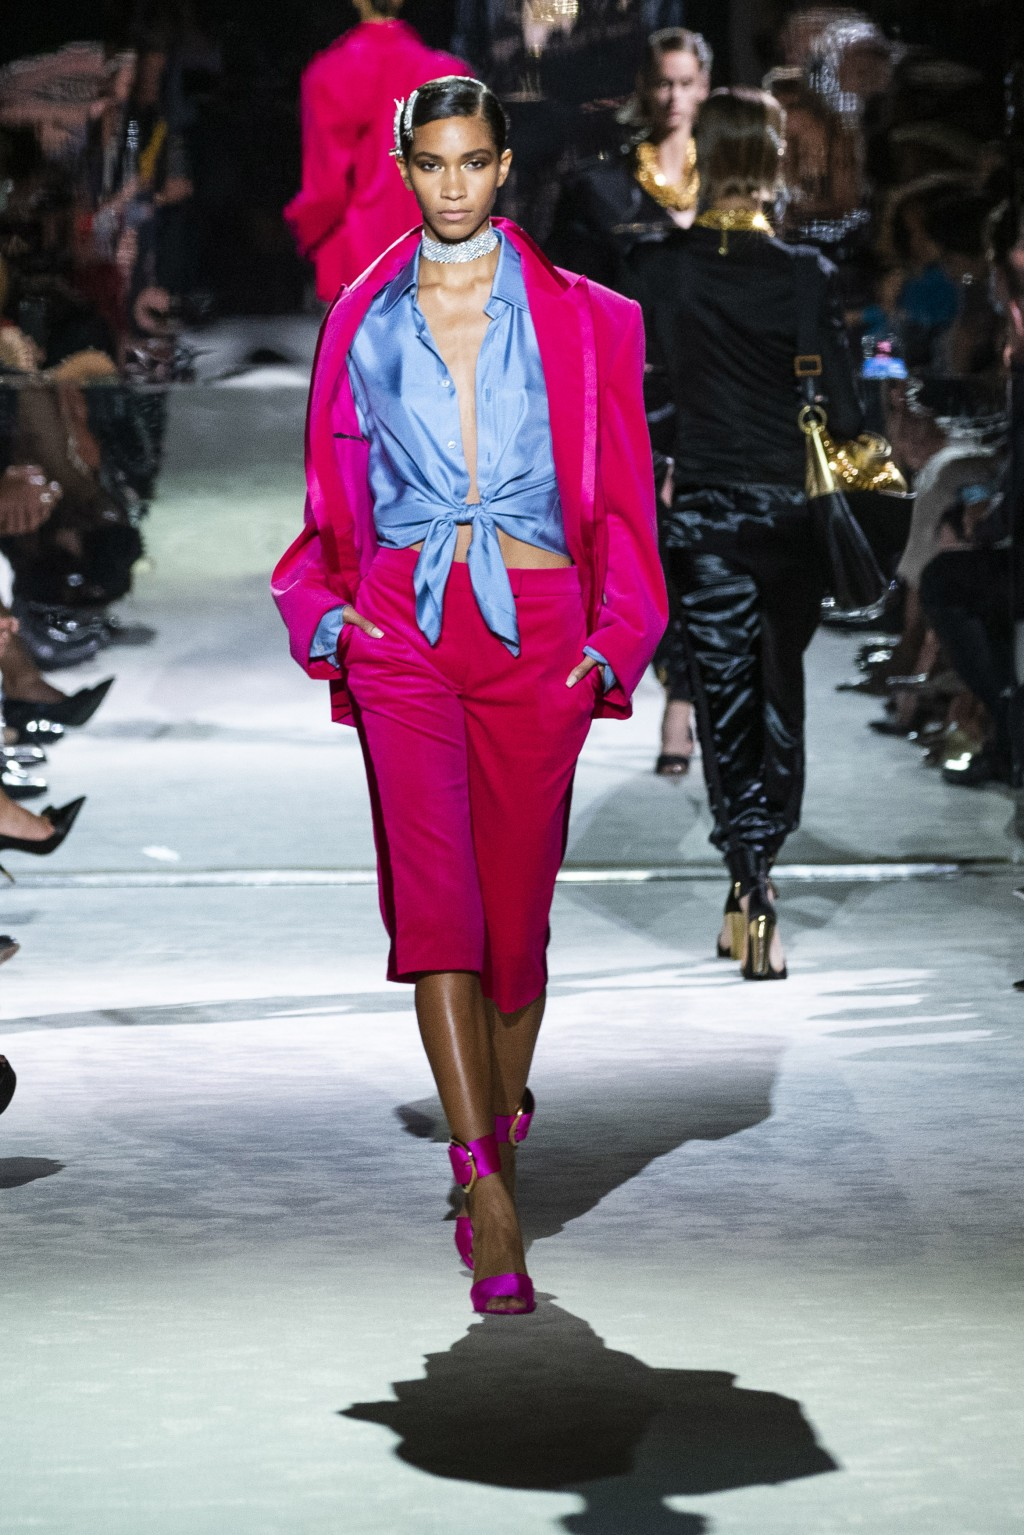 A model walks the runway at the Tom Ford spring/summer 2022 fashion show at Lincoln Center during New York Fashion Week on Sunday, Sept. 12, 2021. (AP...